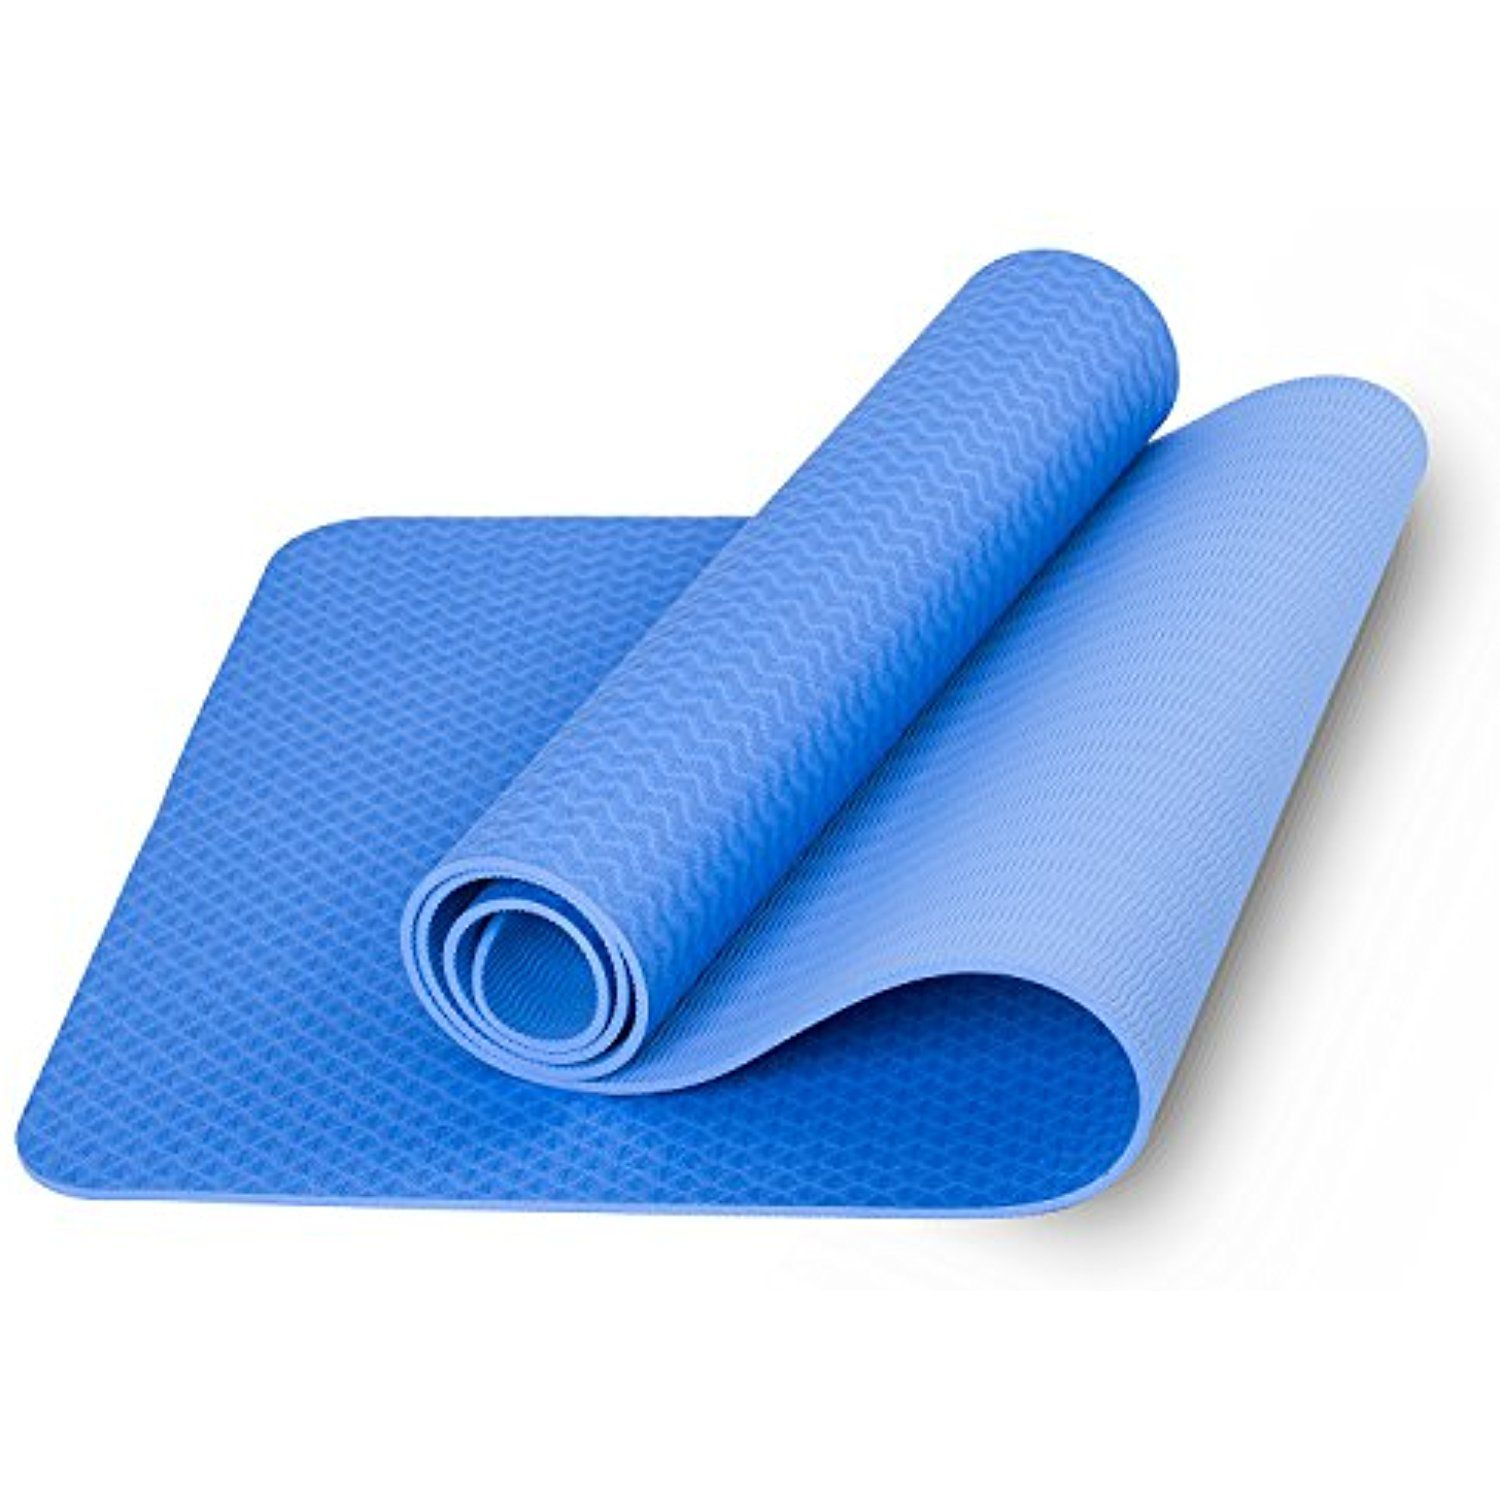 out for work mat exercise dumbbells mats attachment training home equipment